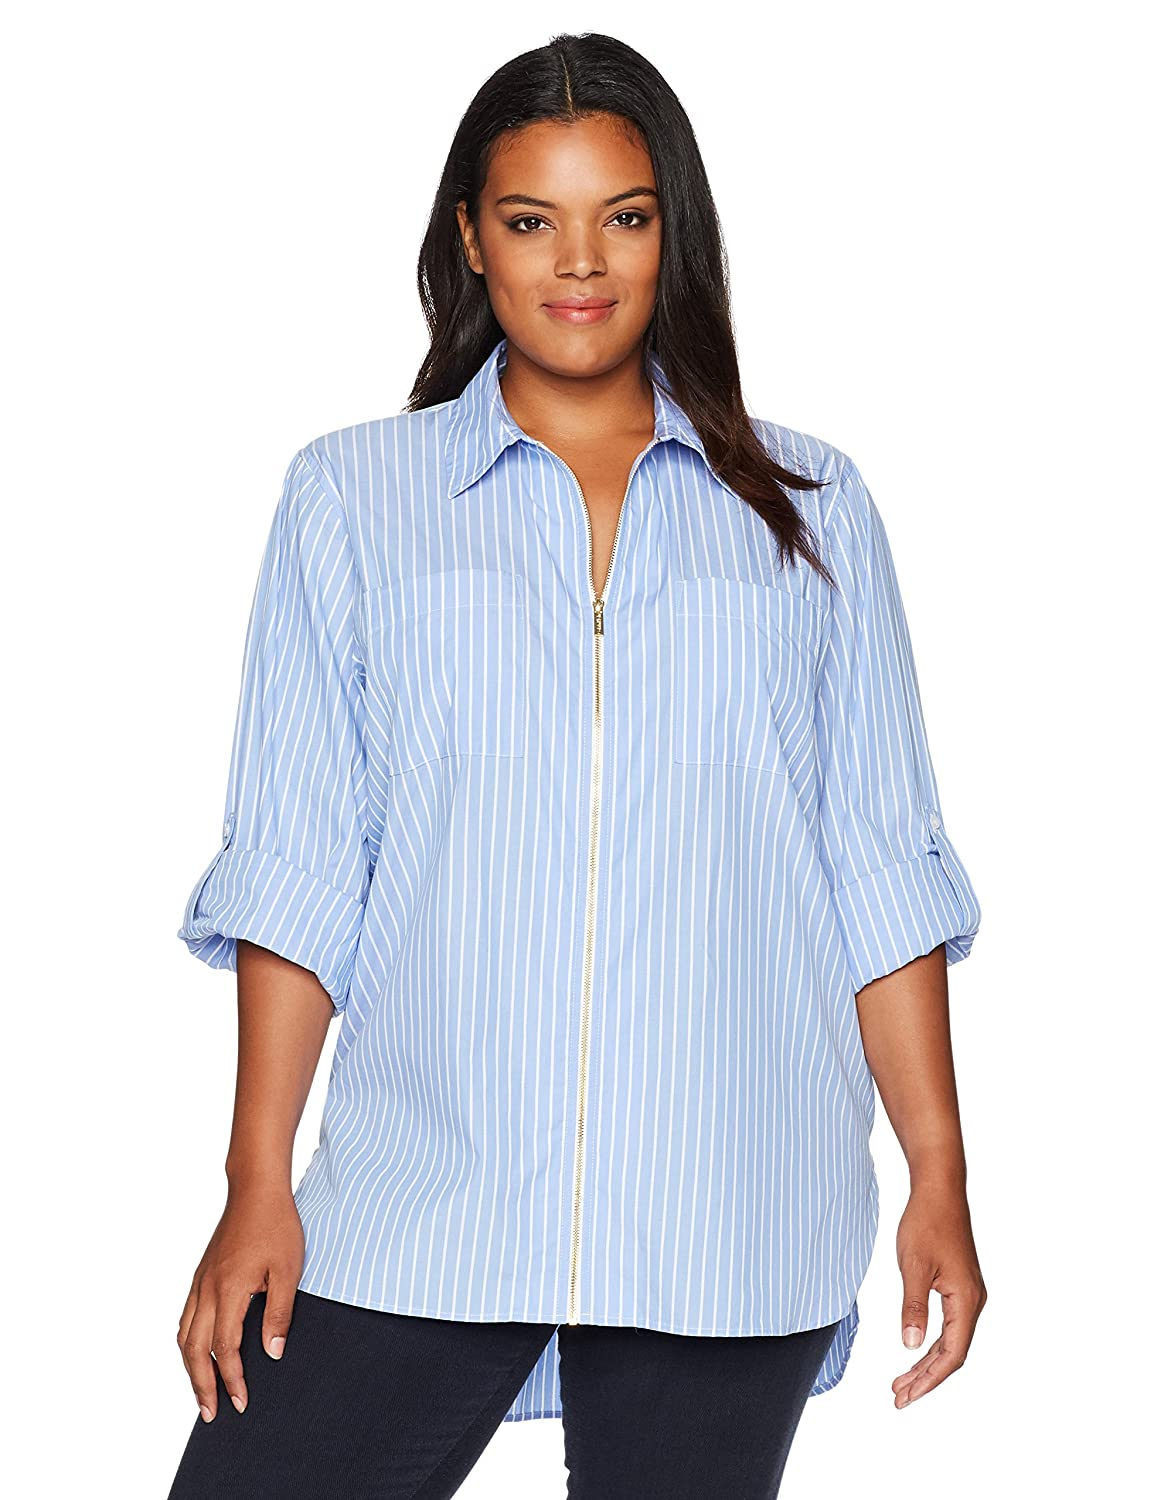 Calvin Klein Women's Plus-Size Zip Front Striped Blouse, Chambray/White, 1X Calvin Klein Women' s Collection w7van561